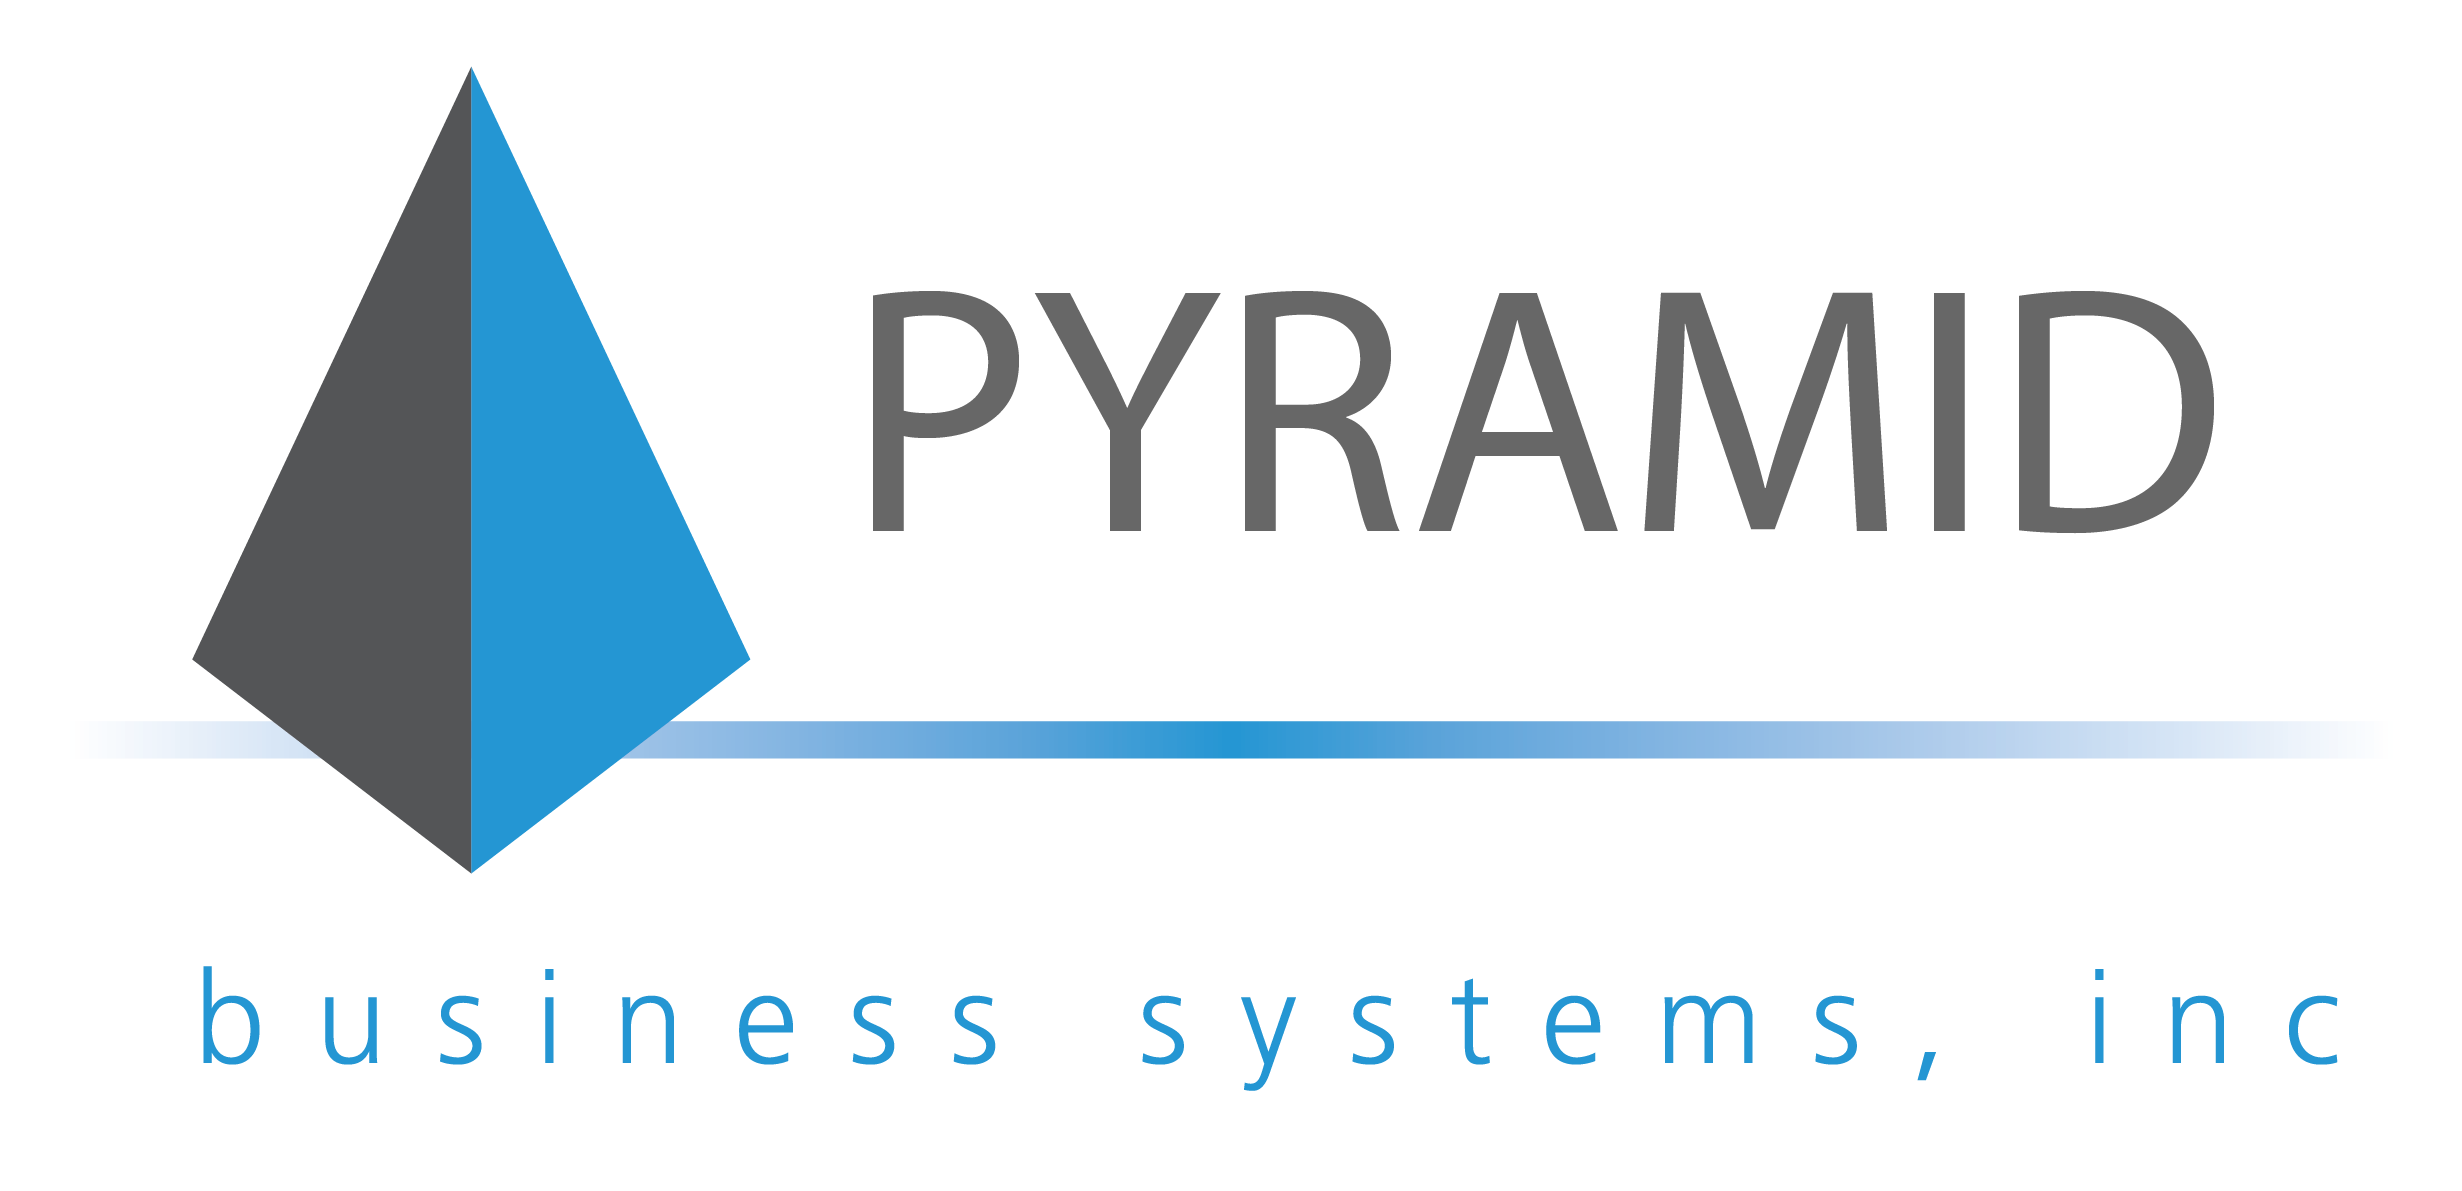 PYRAMID Business Systems